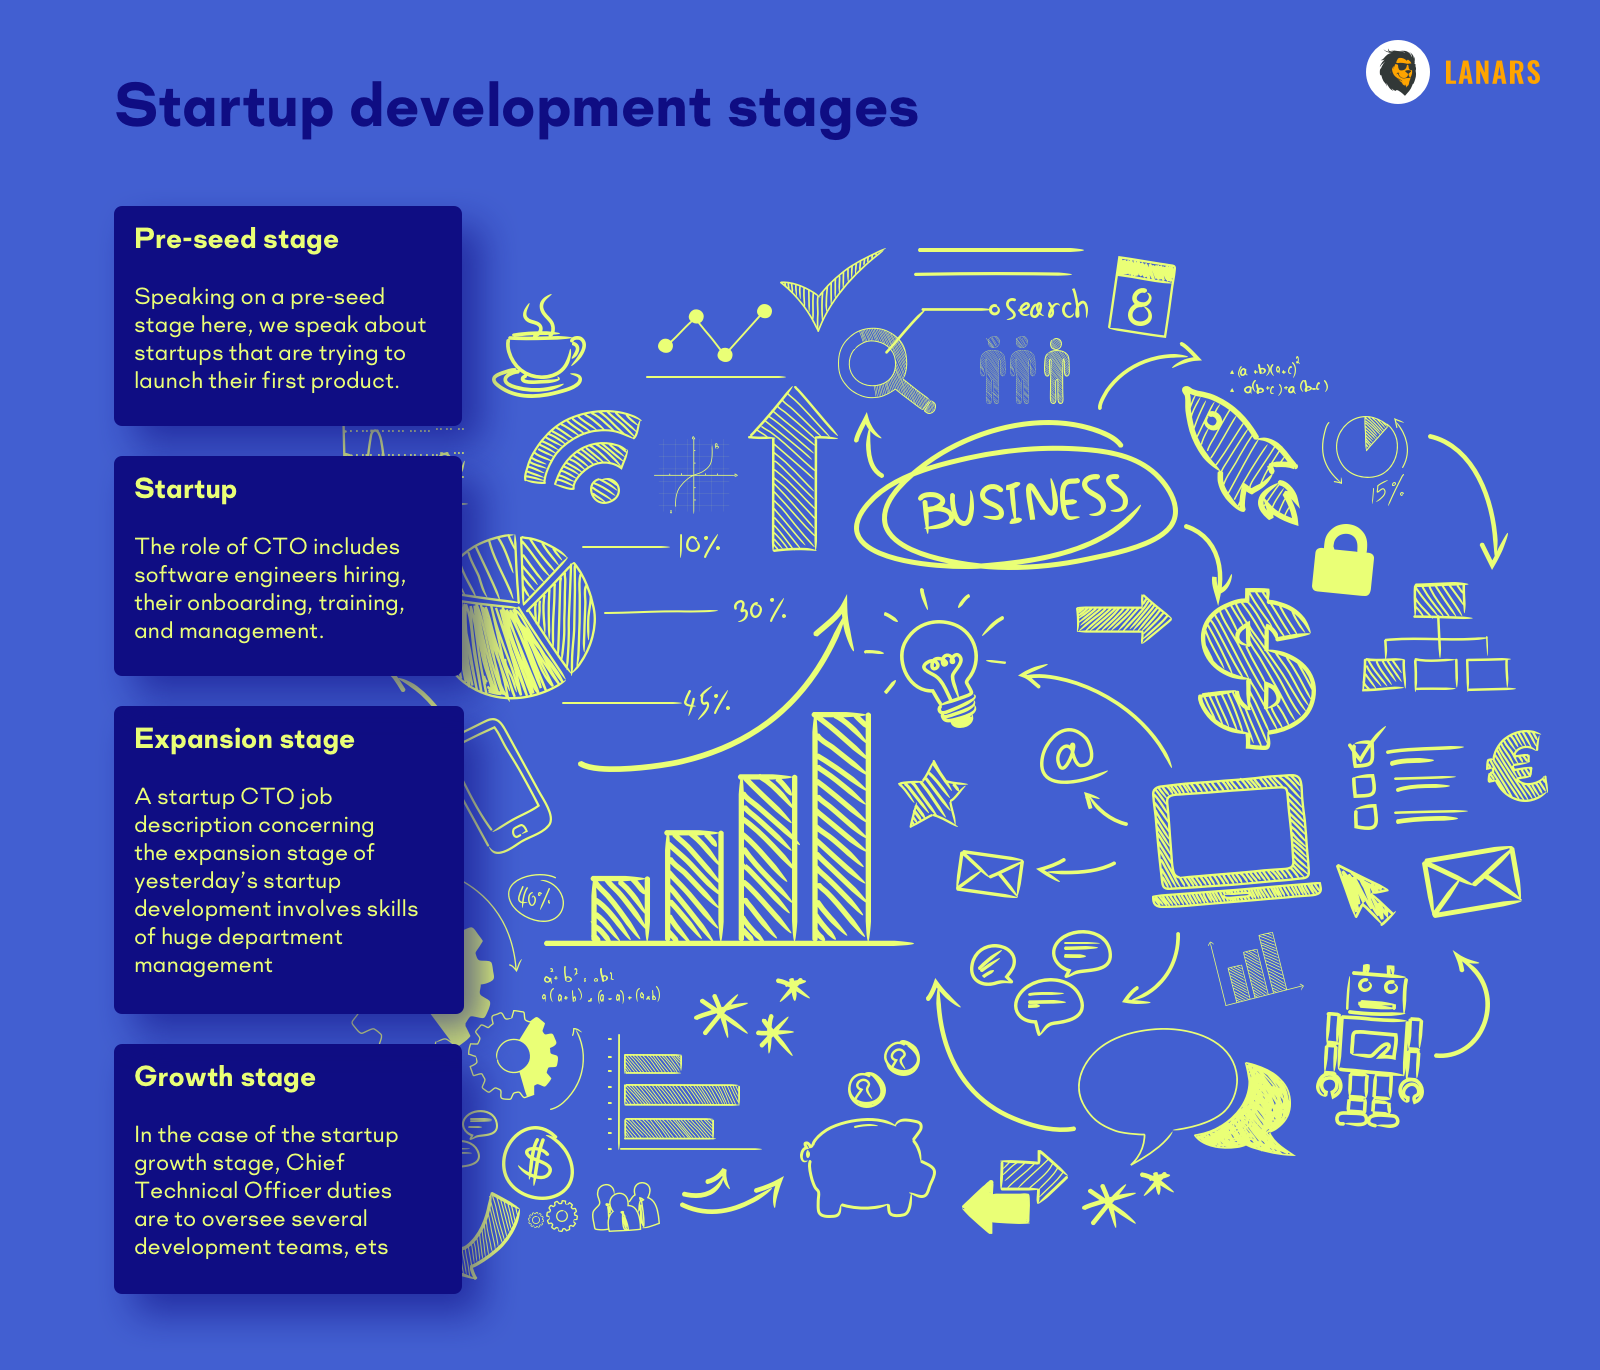 present stages below as a startup development story